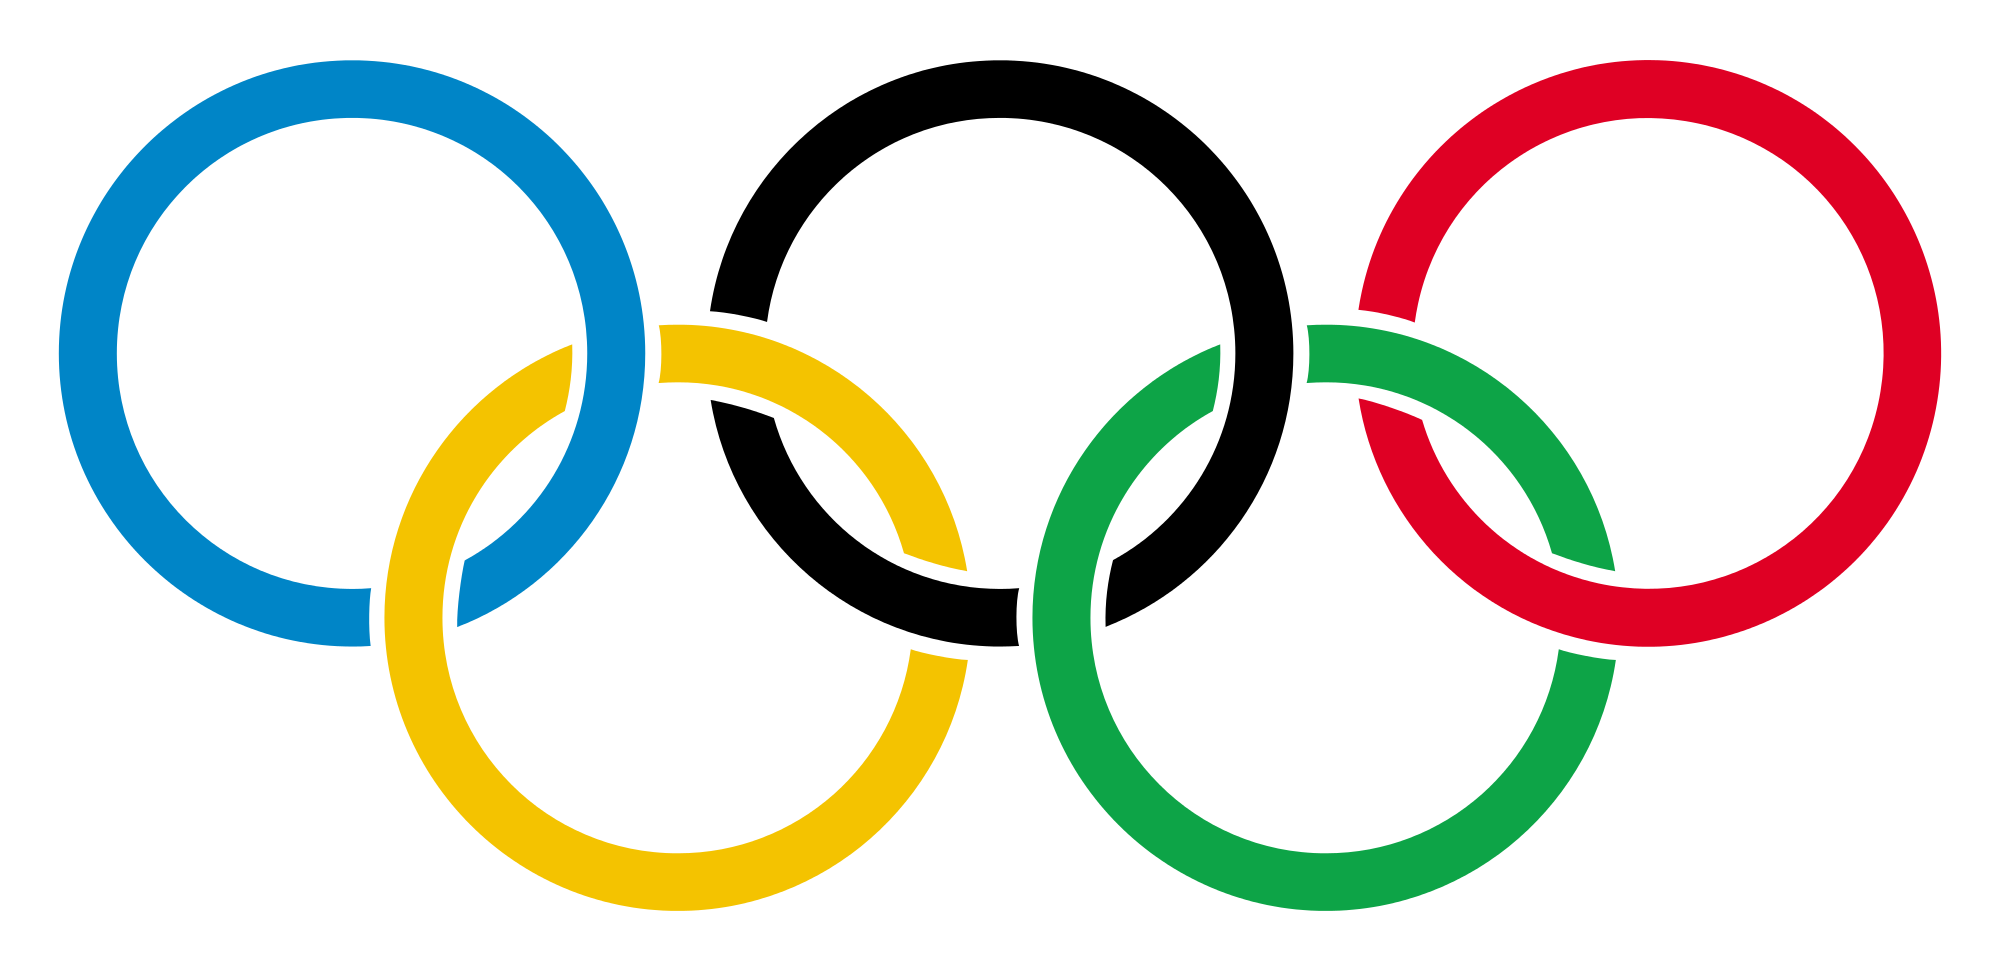 Svg transparency file. Olympic rings with transparent